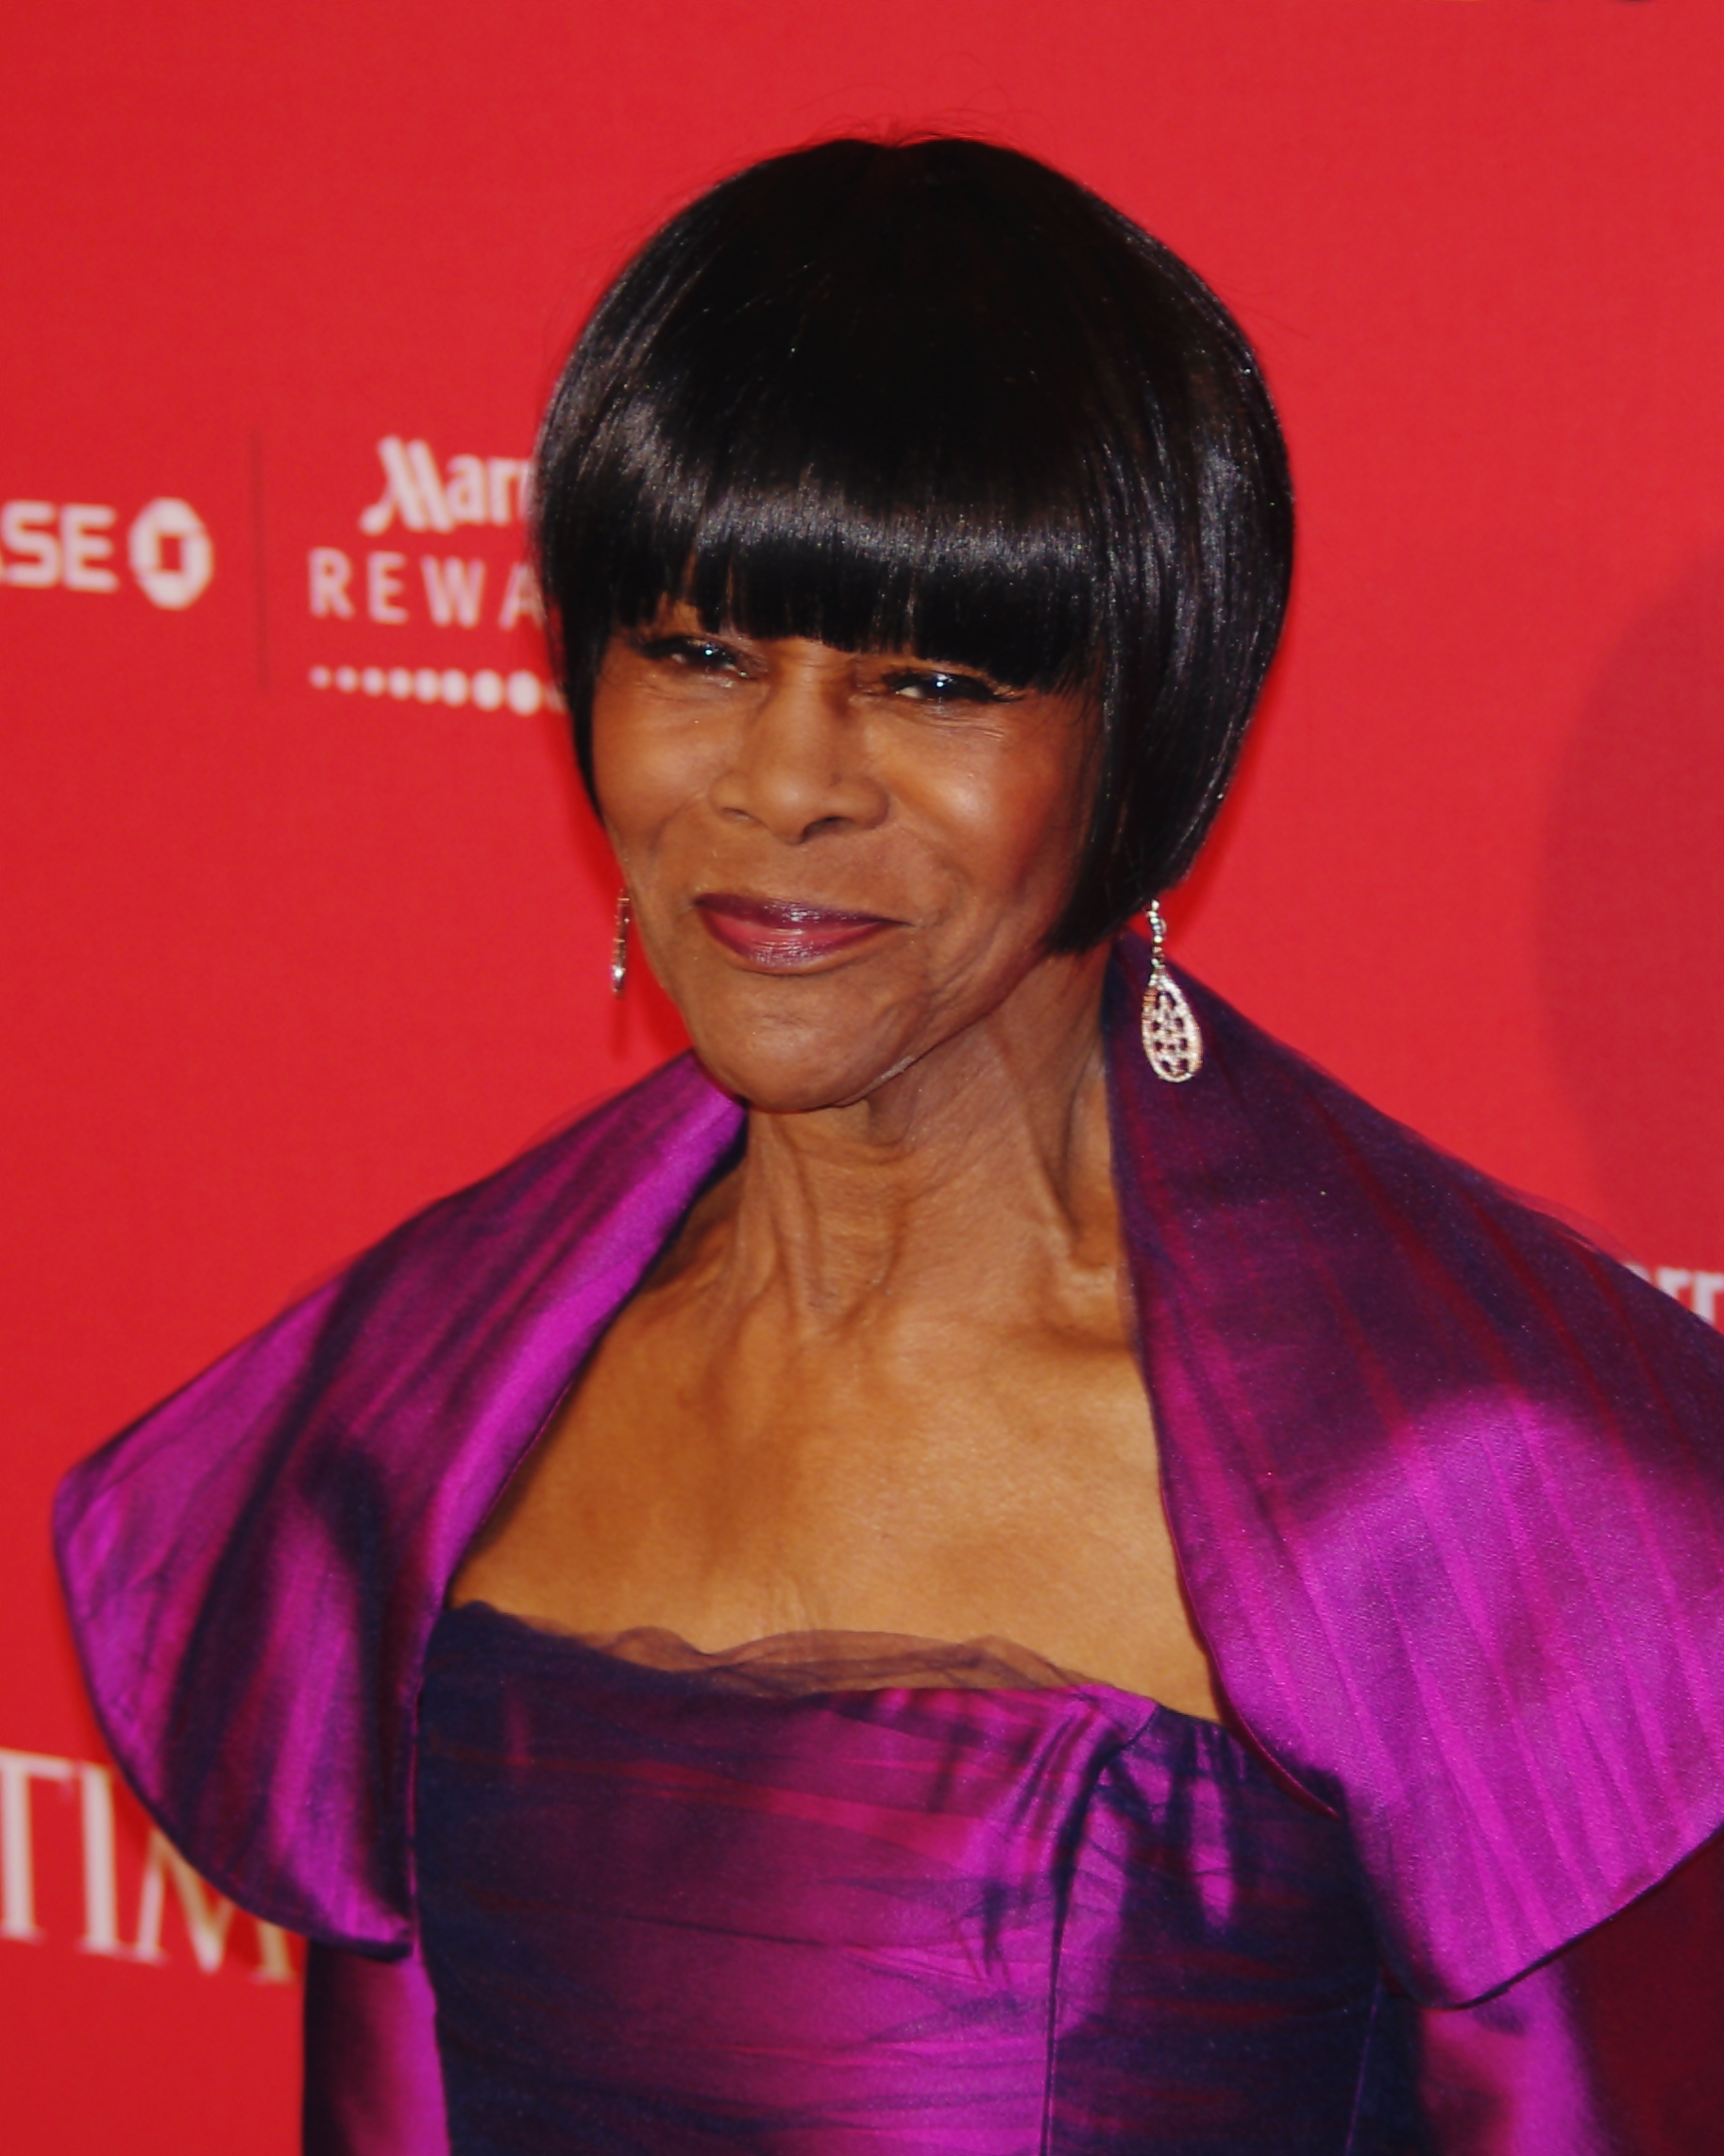 cicely tyson house of cardscicely tyson quotes, cicely tyson wiki, cicely tyson young, cicely tyson achievements, cicely tyson age, cicely tyson 2015, cicely tyson and miles davis, cicely tyson biography, cicely tyson net worth, cicely tyson daughter, cicely tyson movies, cicely tyson kennedy center honors, cicely tyson school, cicely tyson house of cards, cicely tyson daughter kimberly elise, cicely tyson imdb, cicely tyson bio, cicely tyson plastic surgery, cicely tyson married miles davis, cicely tyson family